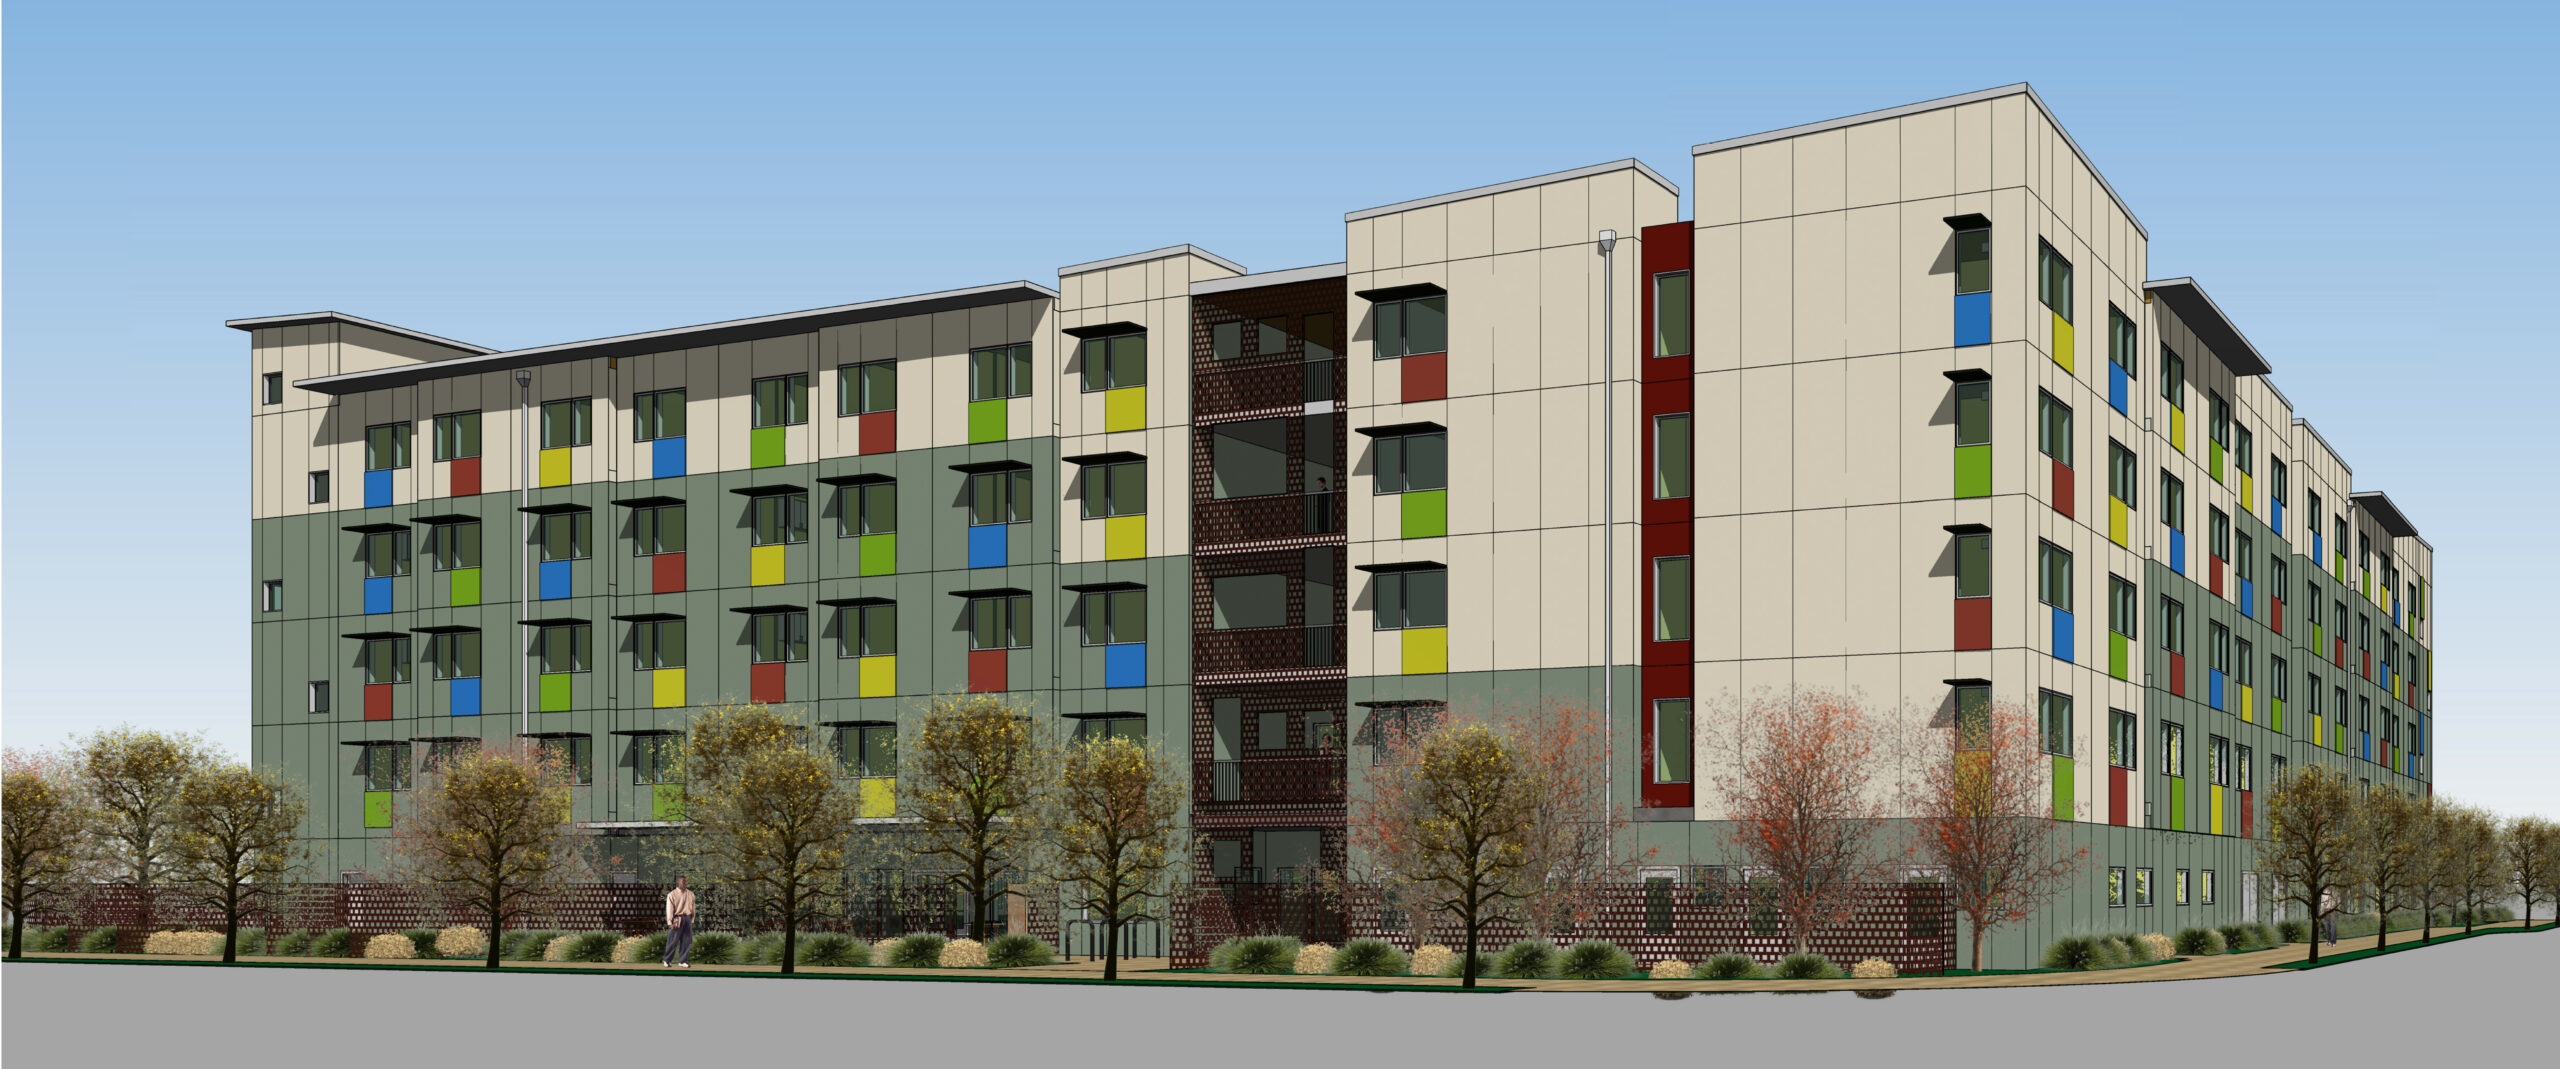 Rendering of Corvin development in Santa Clara